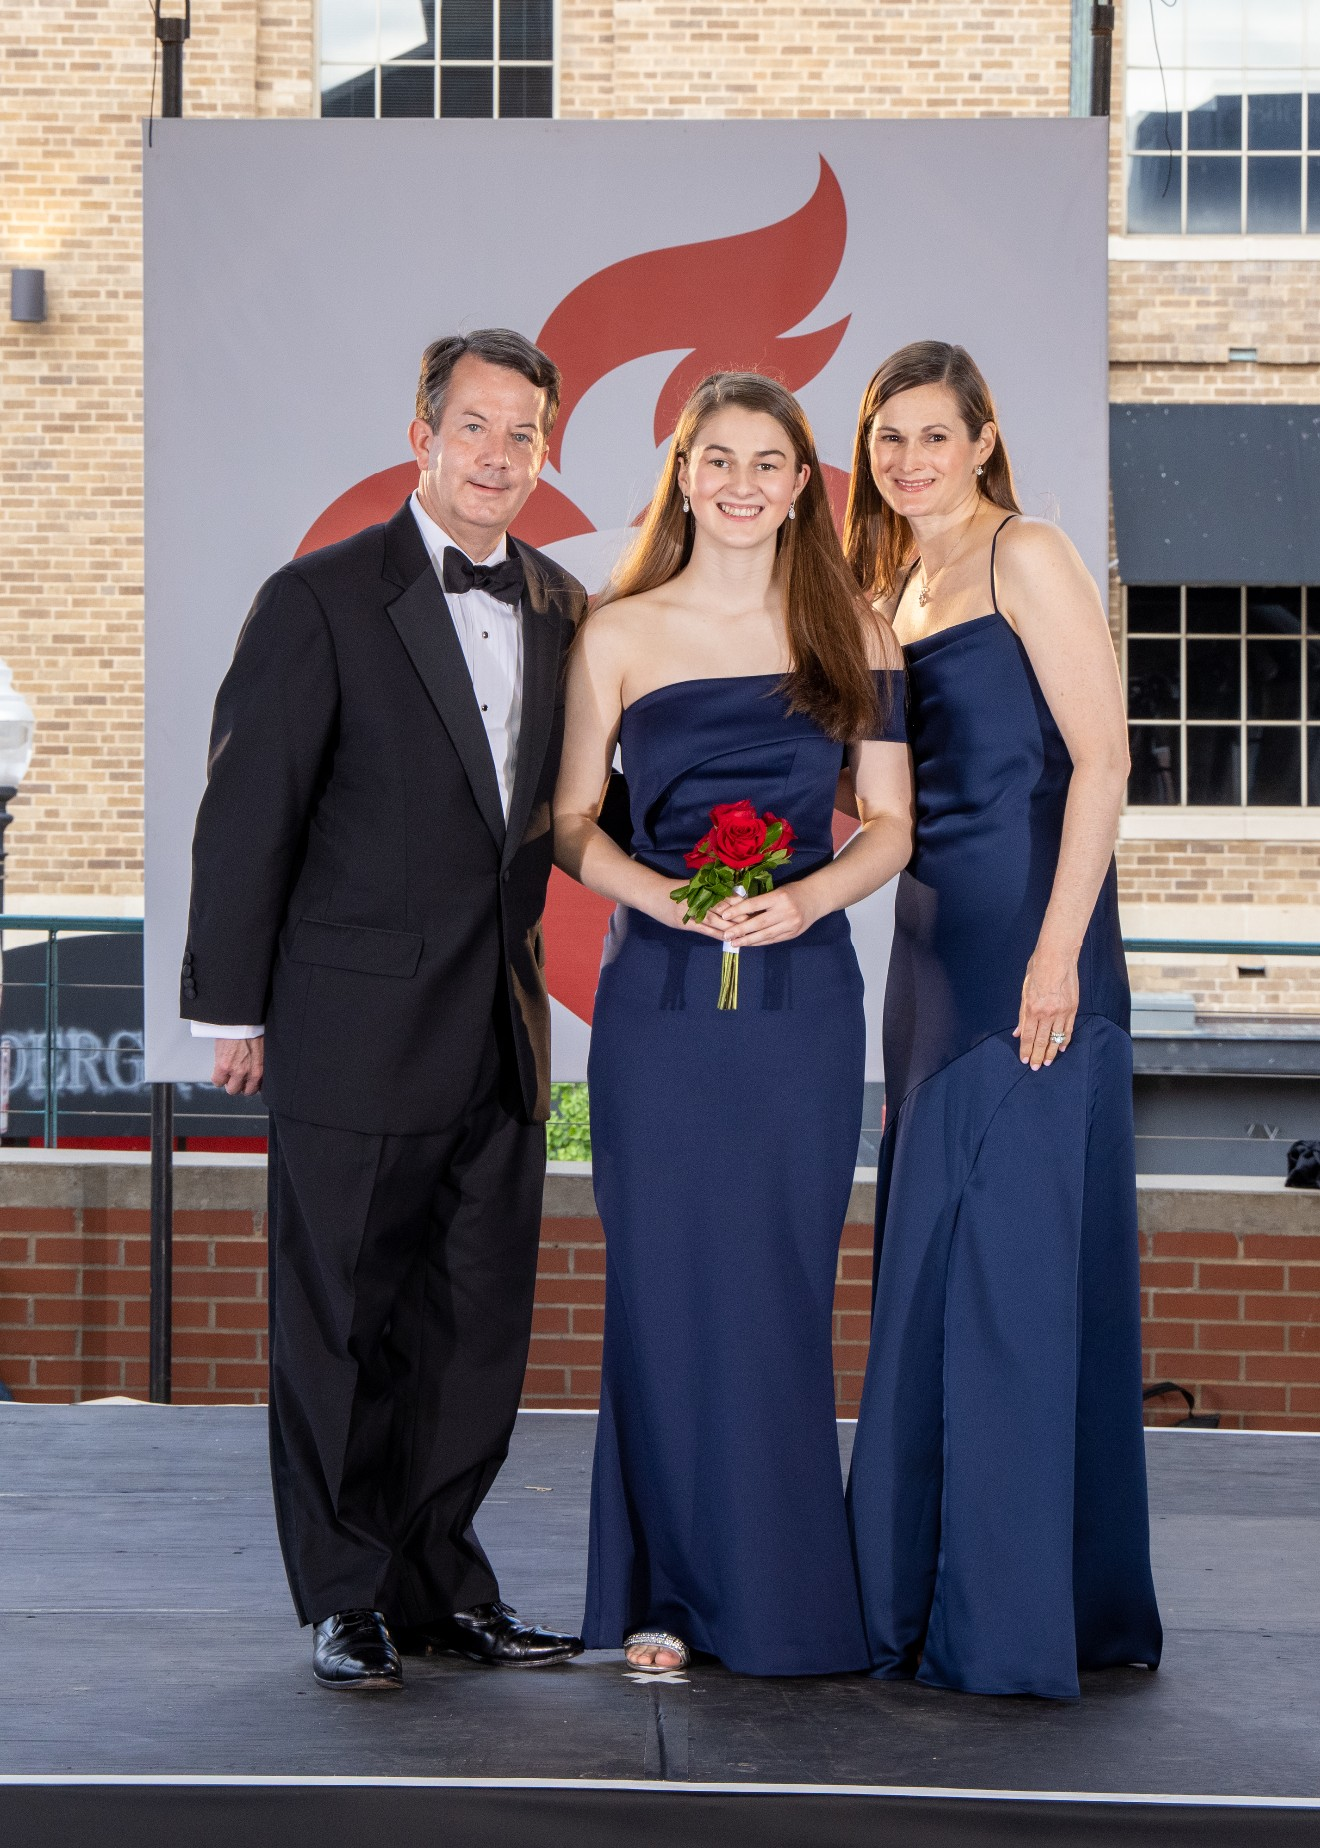 Christopher Cooley, Emma Grace Cooley, Cristy Cooley